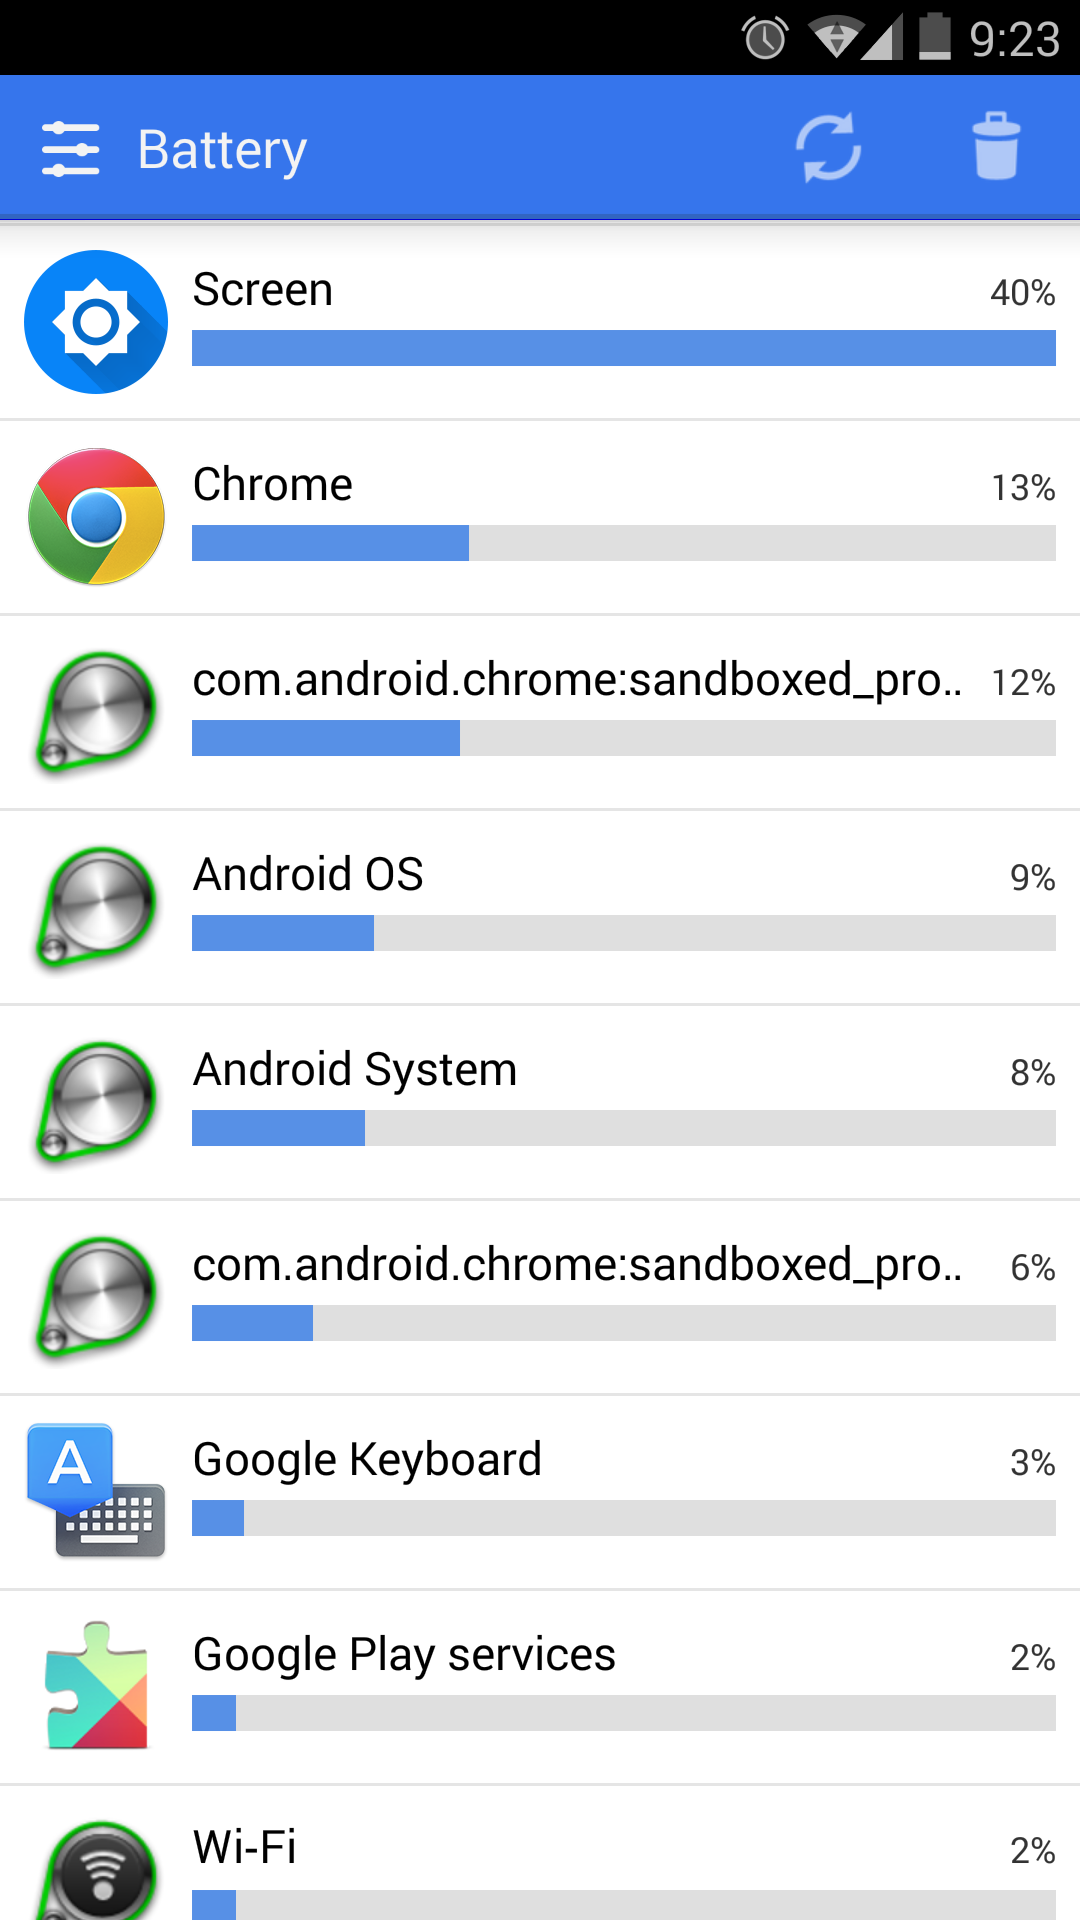 Does anyone know what this is? android chrome:sandboxed process